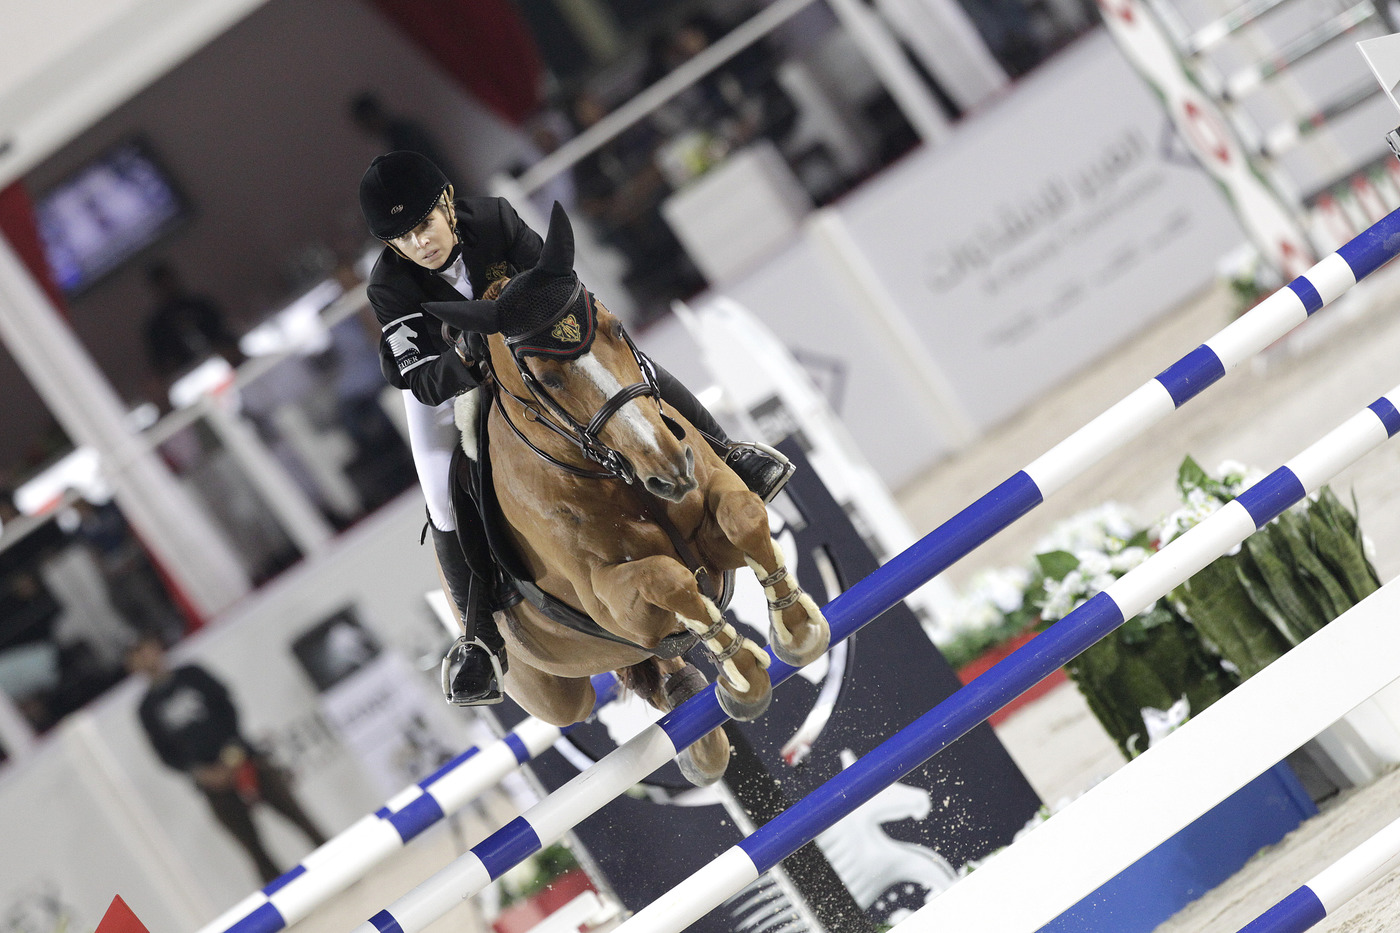 Longines Show Jumping Event: Global Champions Tour and Longines team up for four events in 2012 2